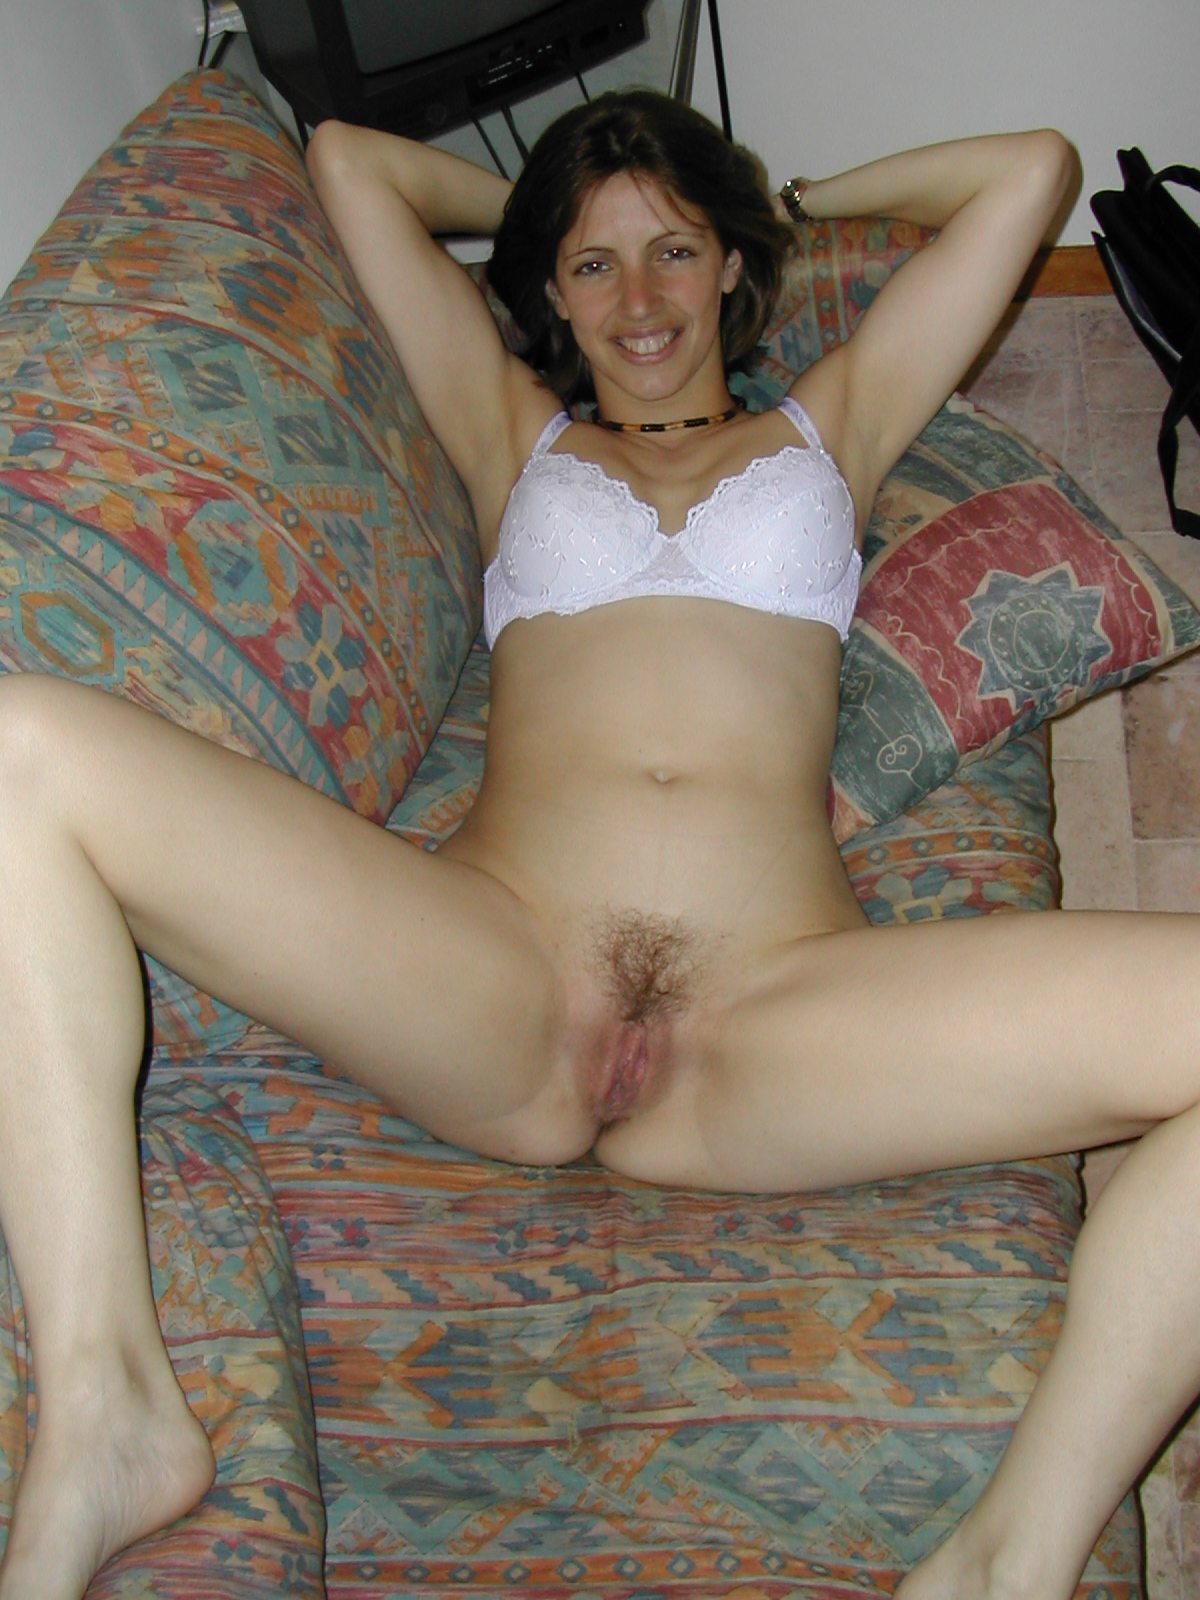 Cocks perfect! adult amateur jpeg postings love smash